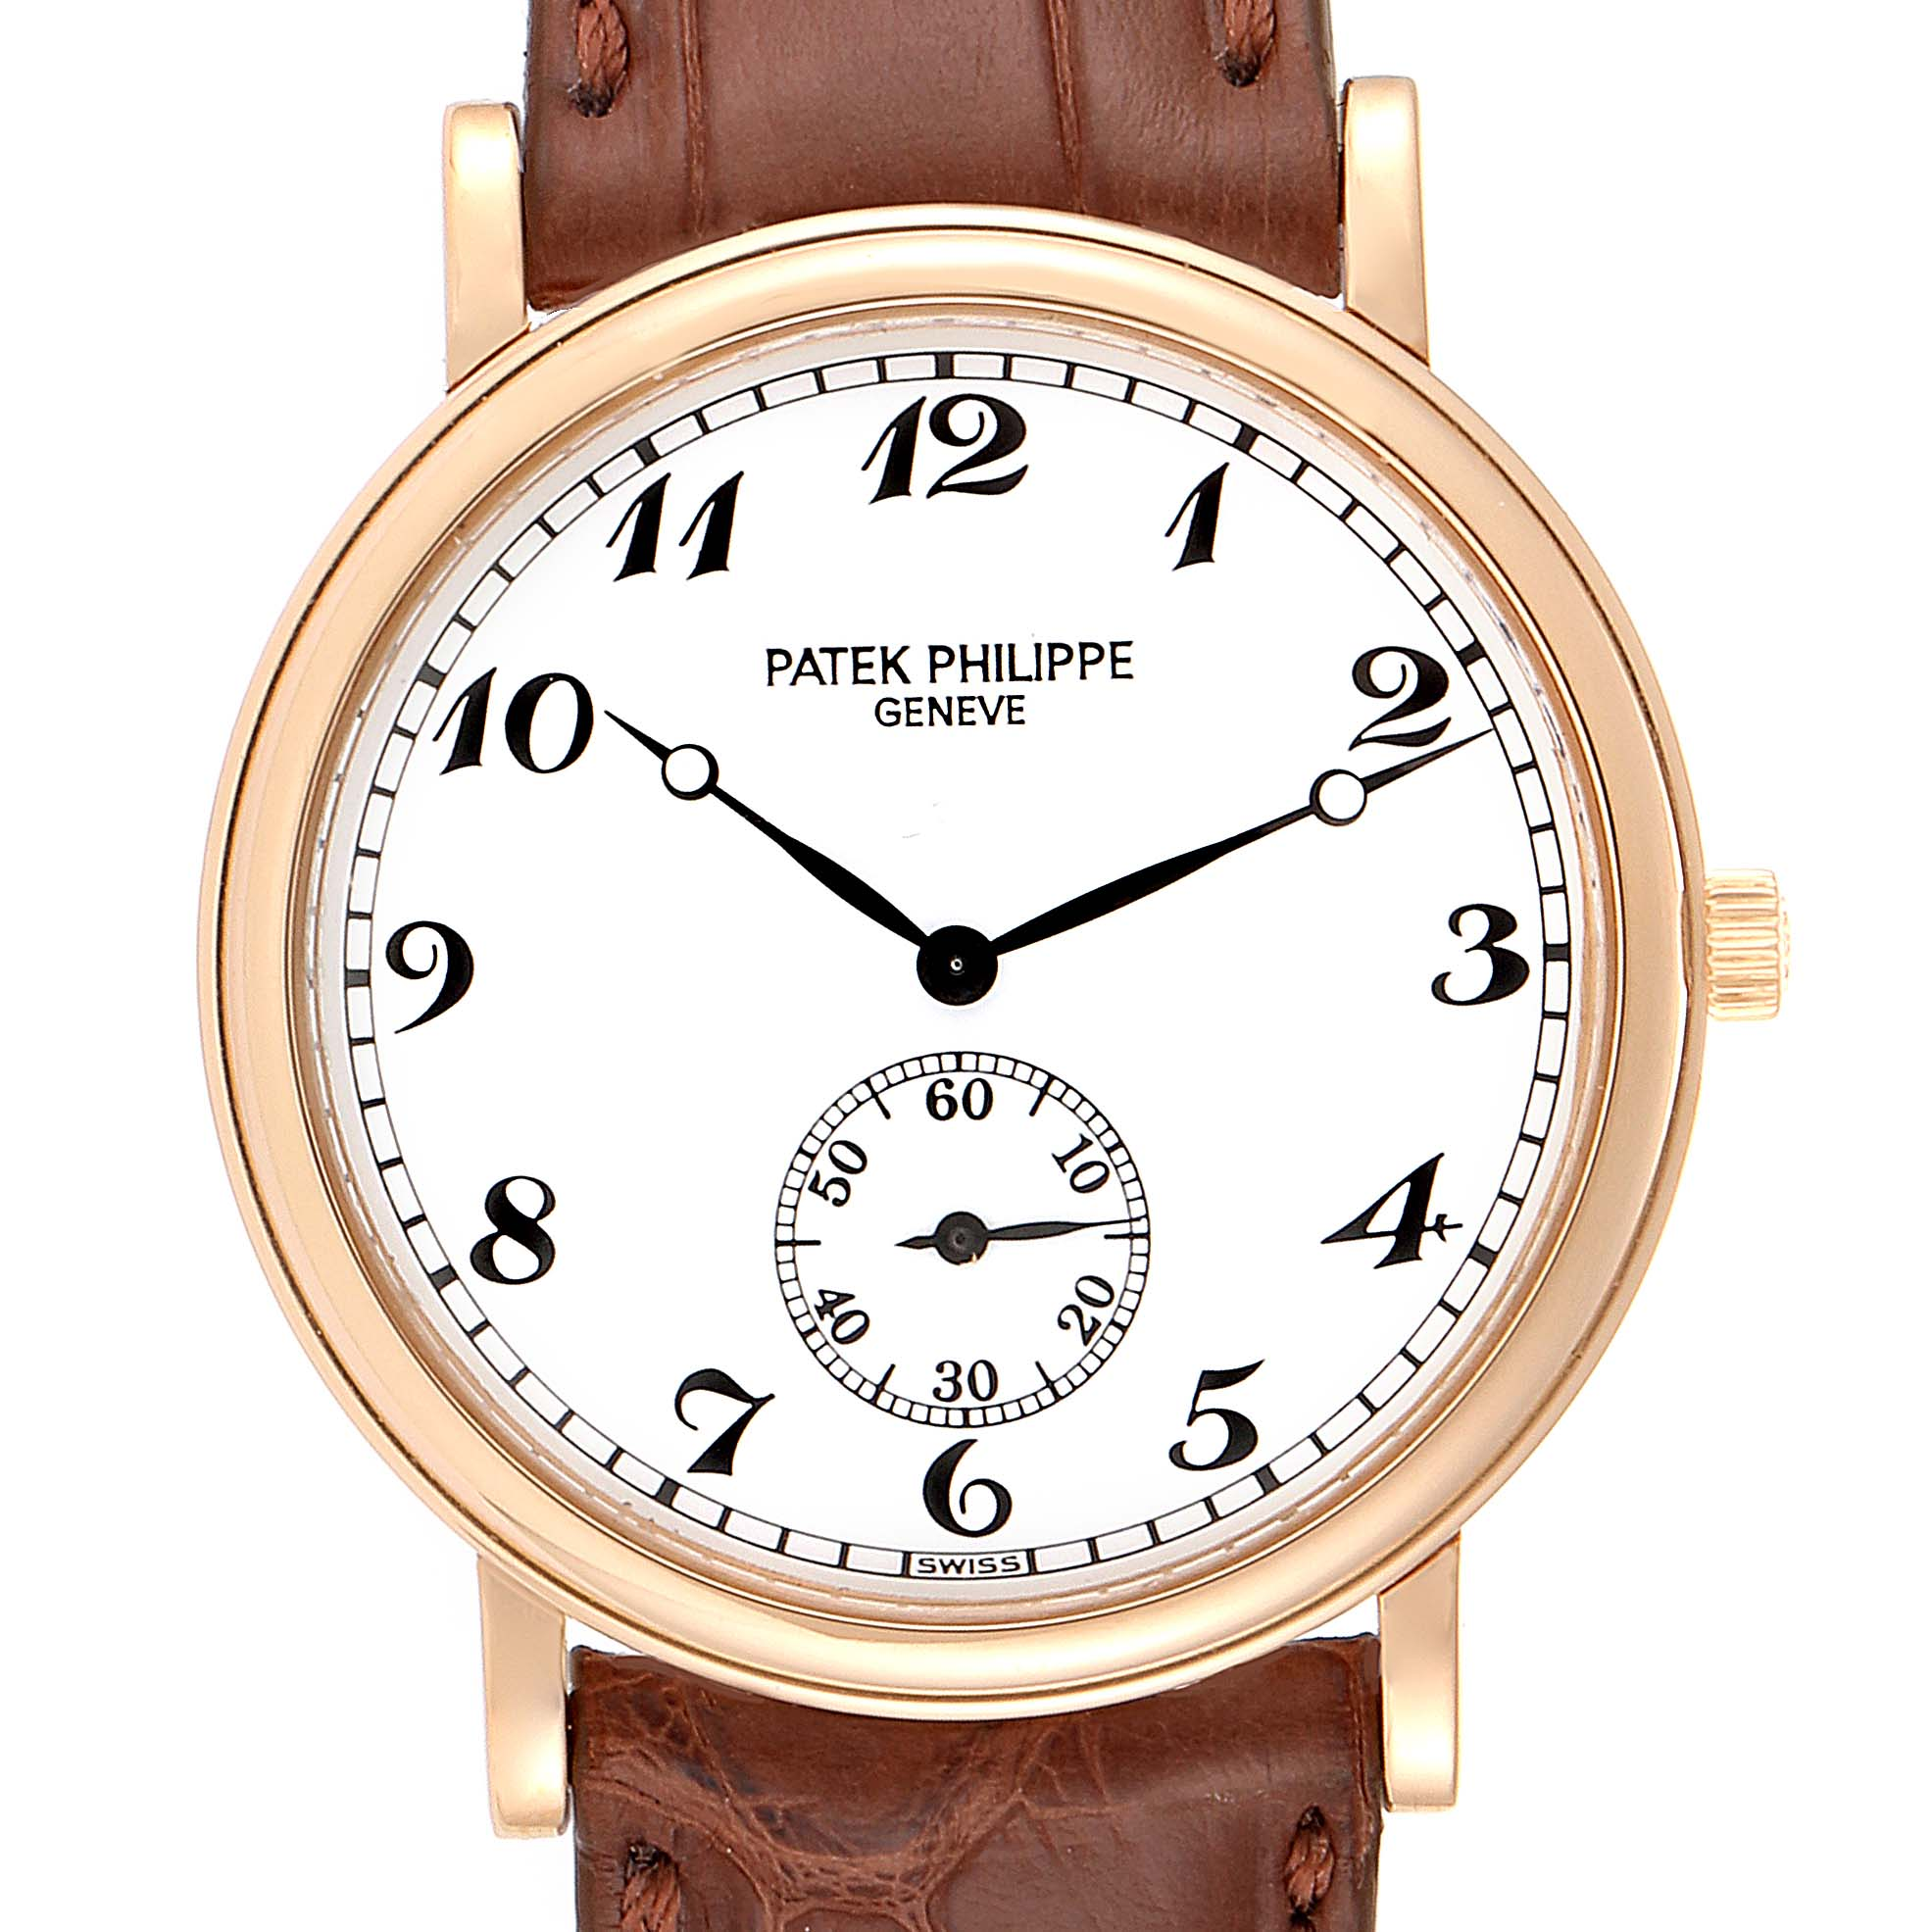 Patek Philippe Calatrava Officier 18K Rose Gold Mens Watch 5022